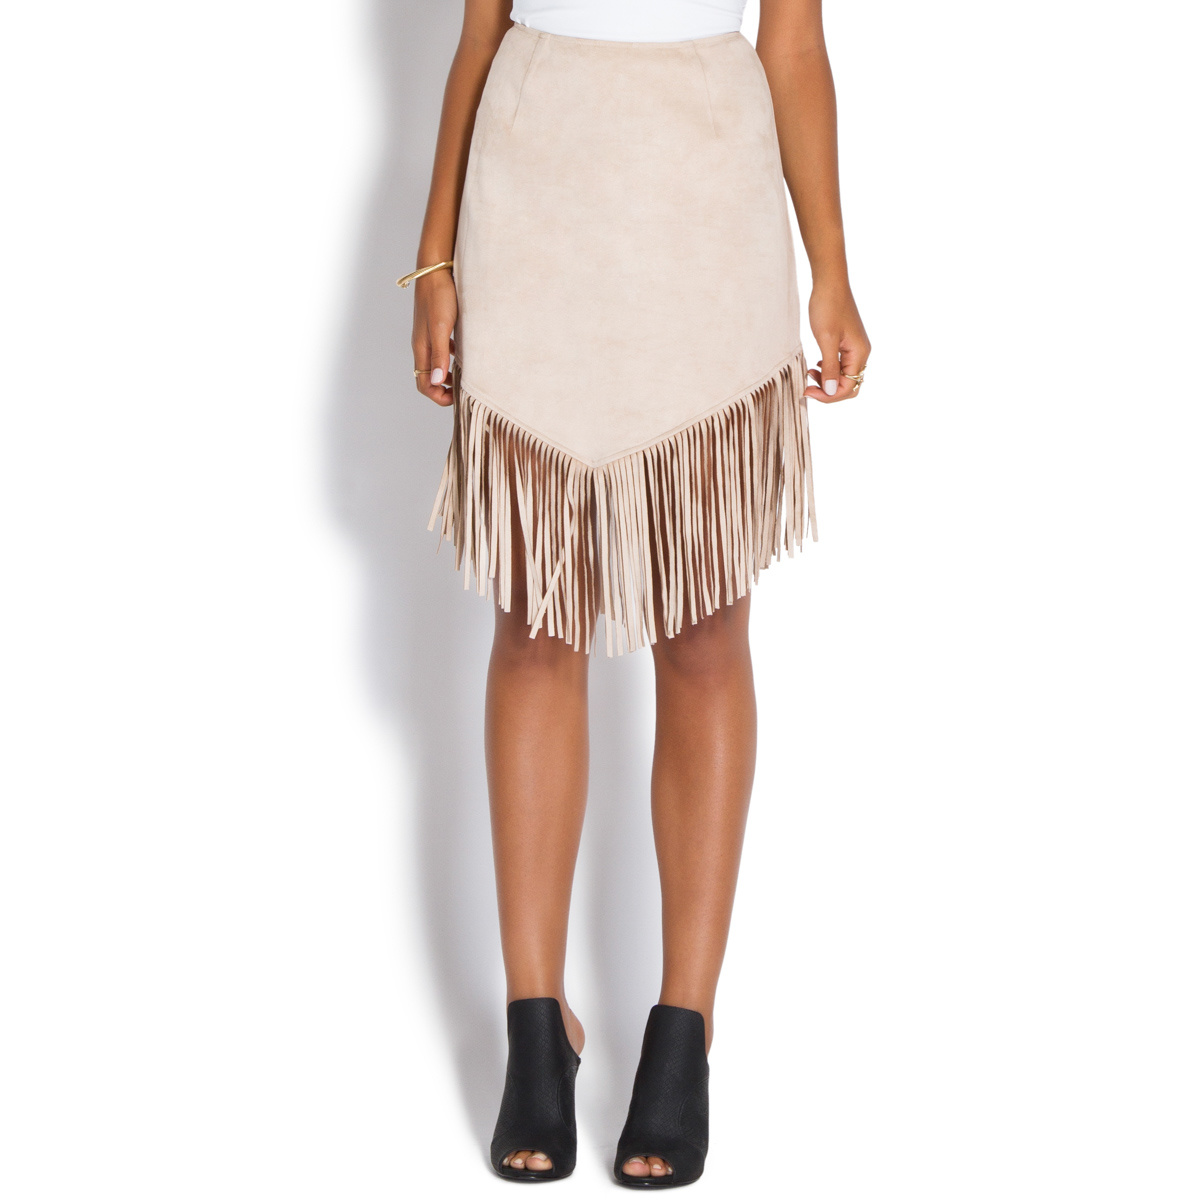 FAUX SUEDE FRINGE SKIRT - ShoeDazzle